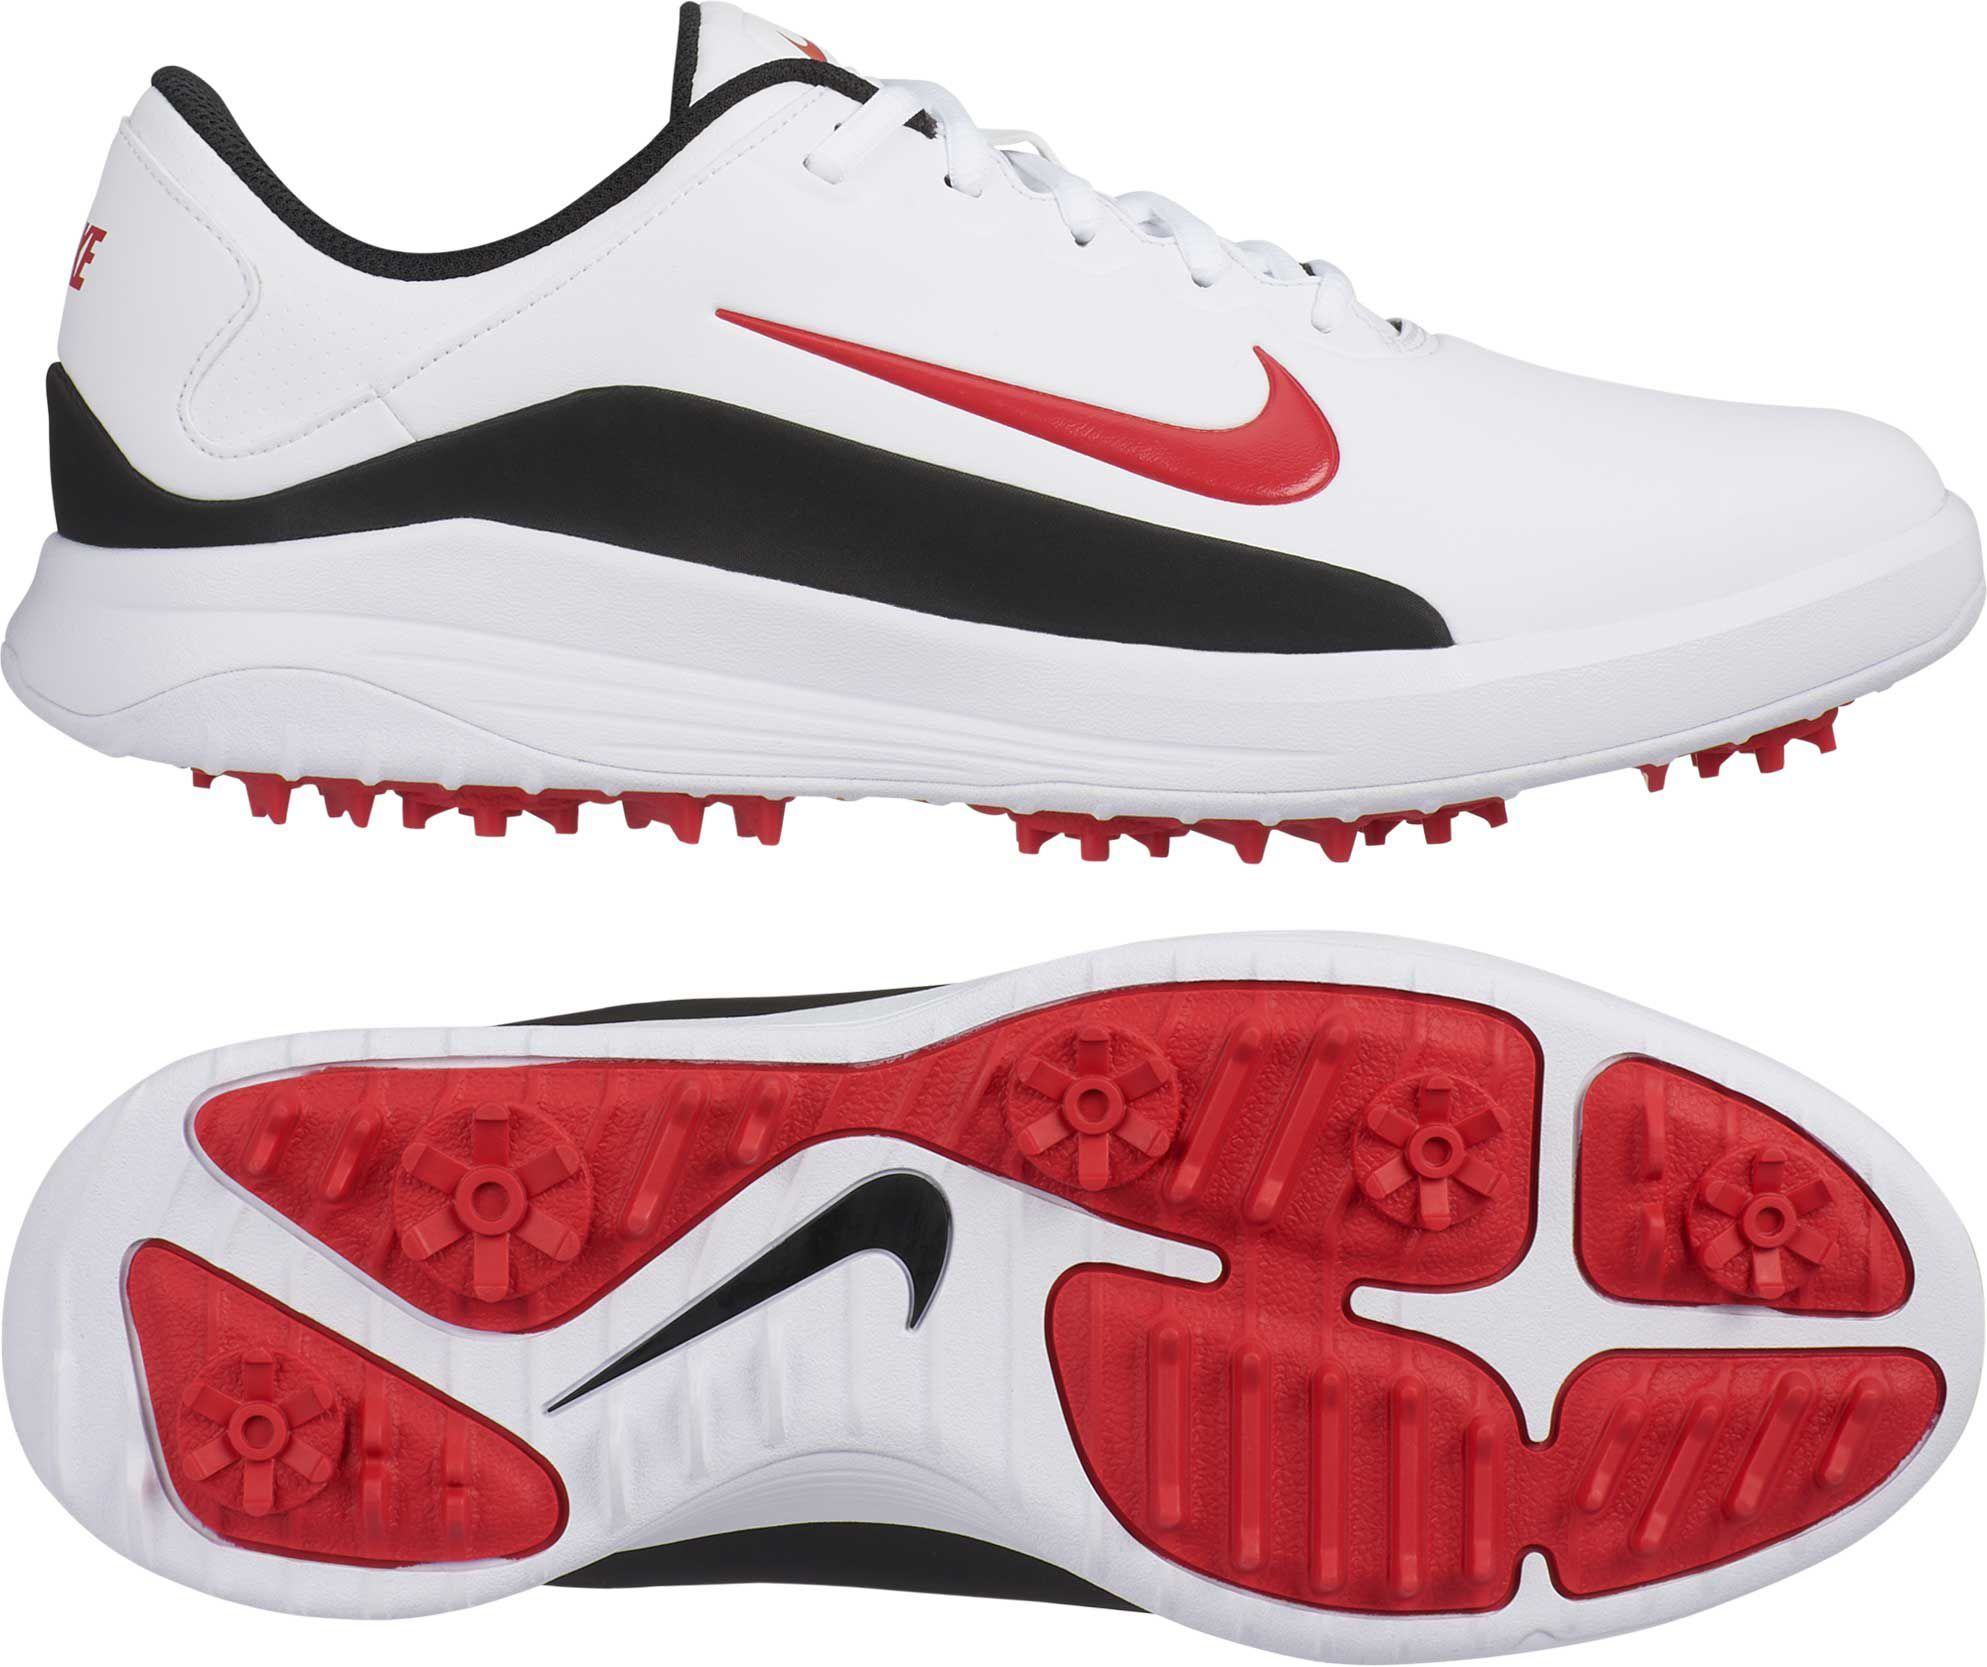 Nike Men S Vapor Golf Shoes Golf Shoes Nike Men Nike